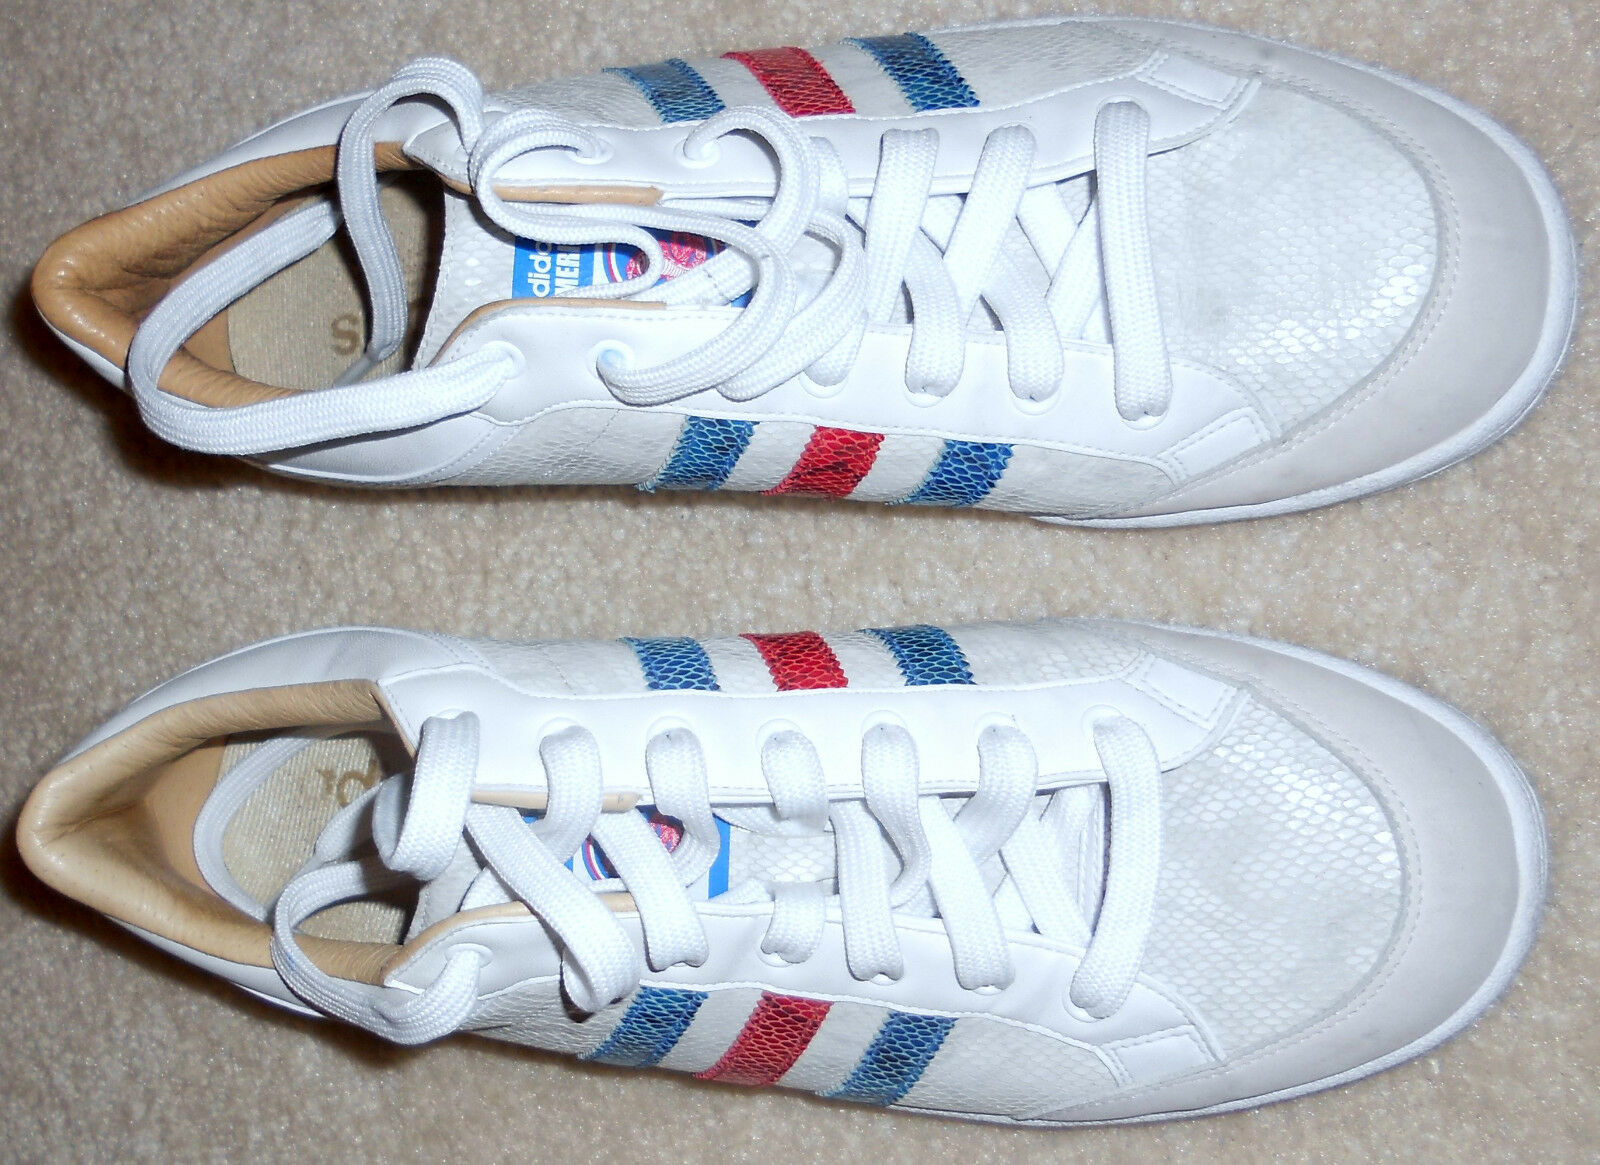 2006 Adidas Americana snake leather 779001 779001 779001 Art 659829 Sz 11 881580